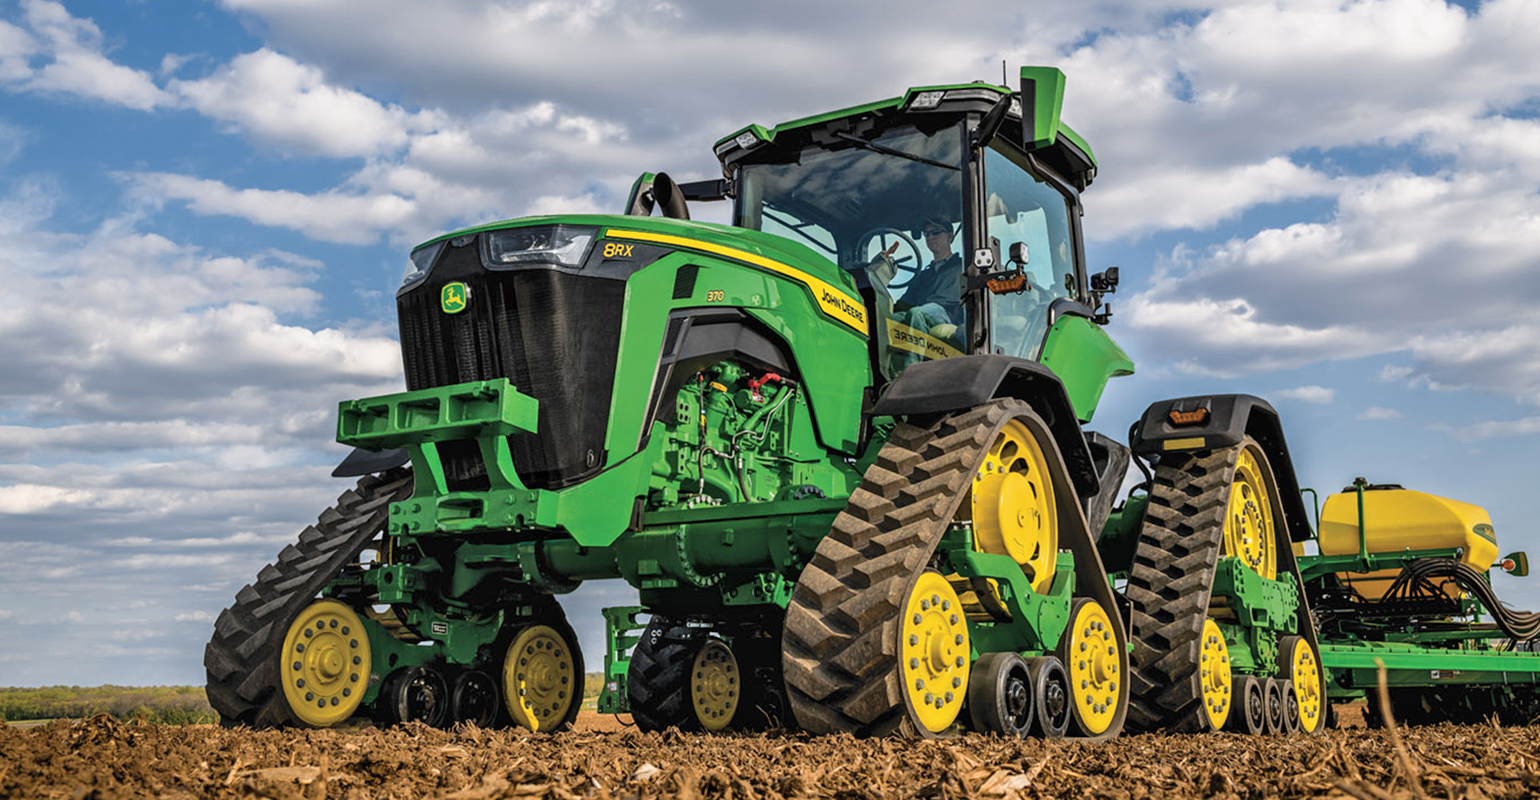 John Deere 8RX tractor received CES innovation award